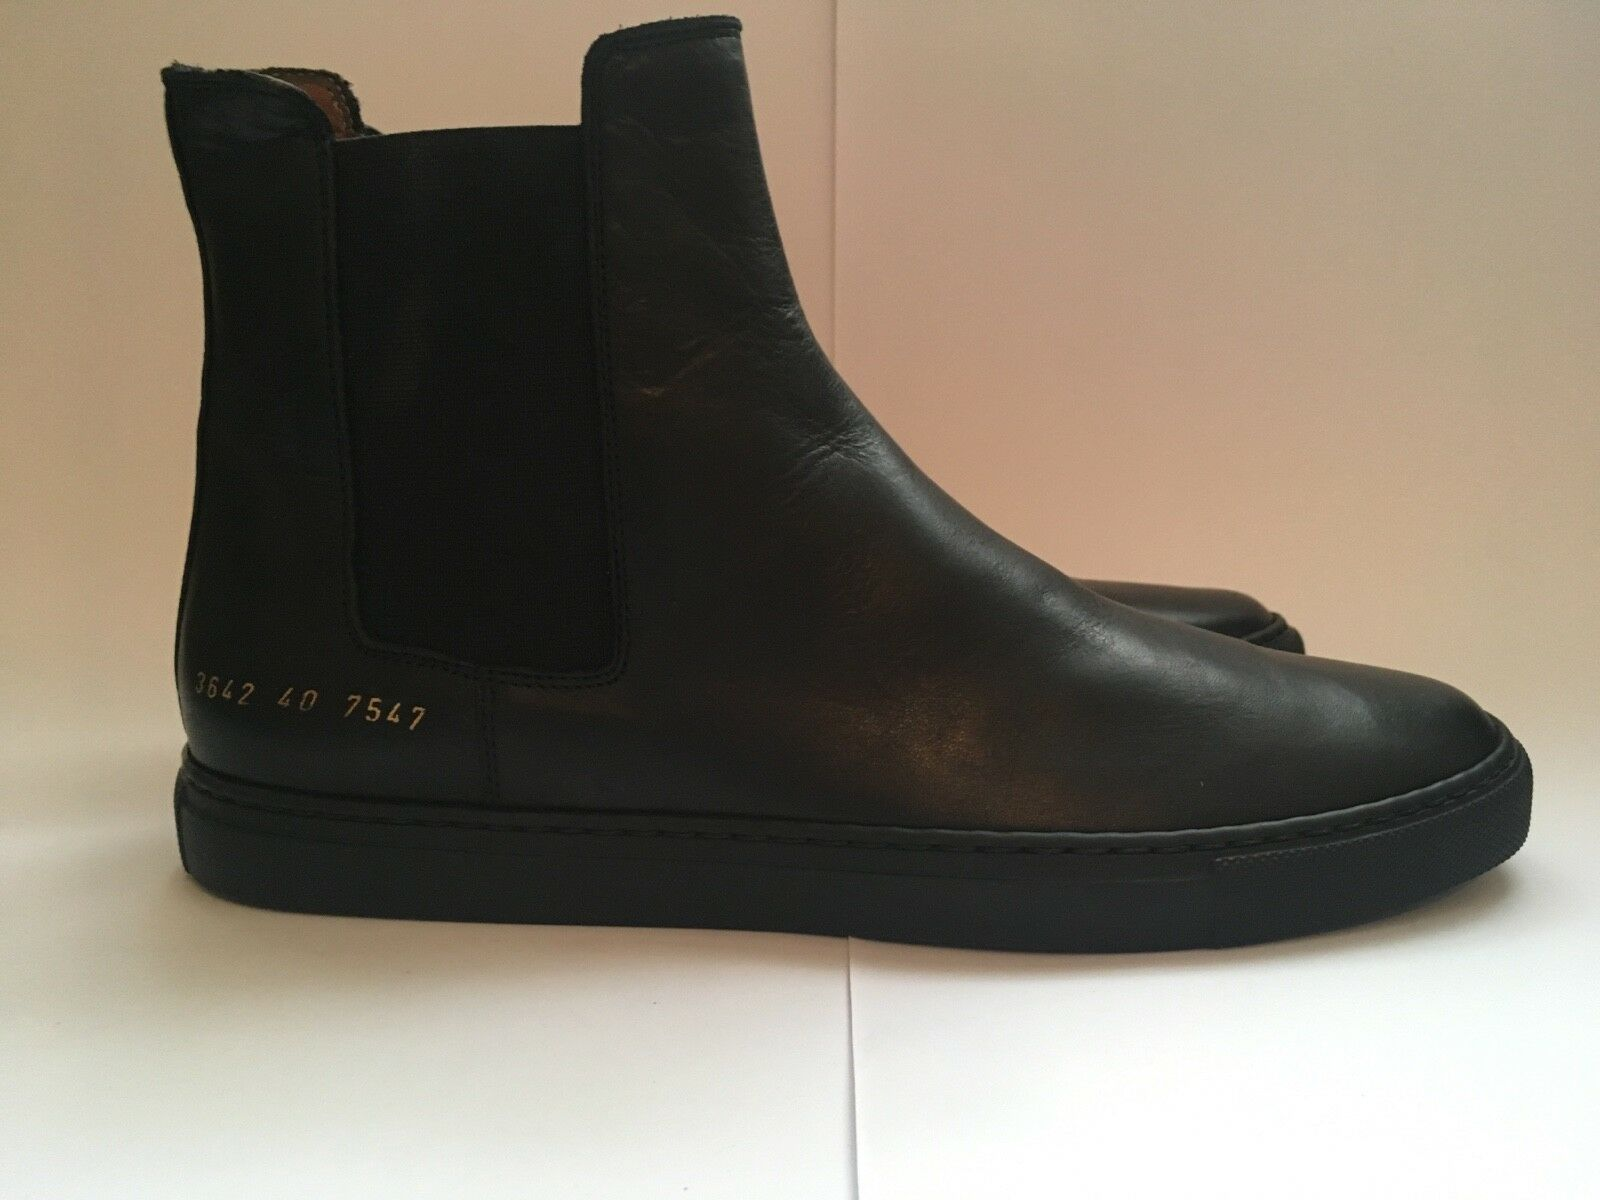 COMMON PROJECTS Leather Chelsea Stiefel......Deadstock, Slip On, Turnschuhe, Unisex